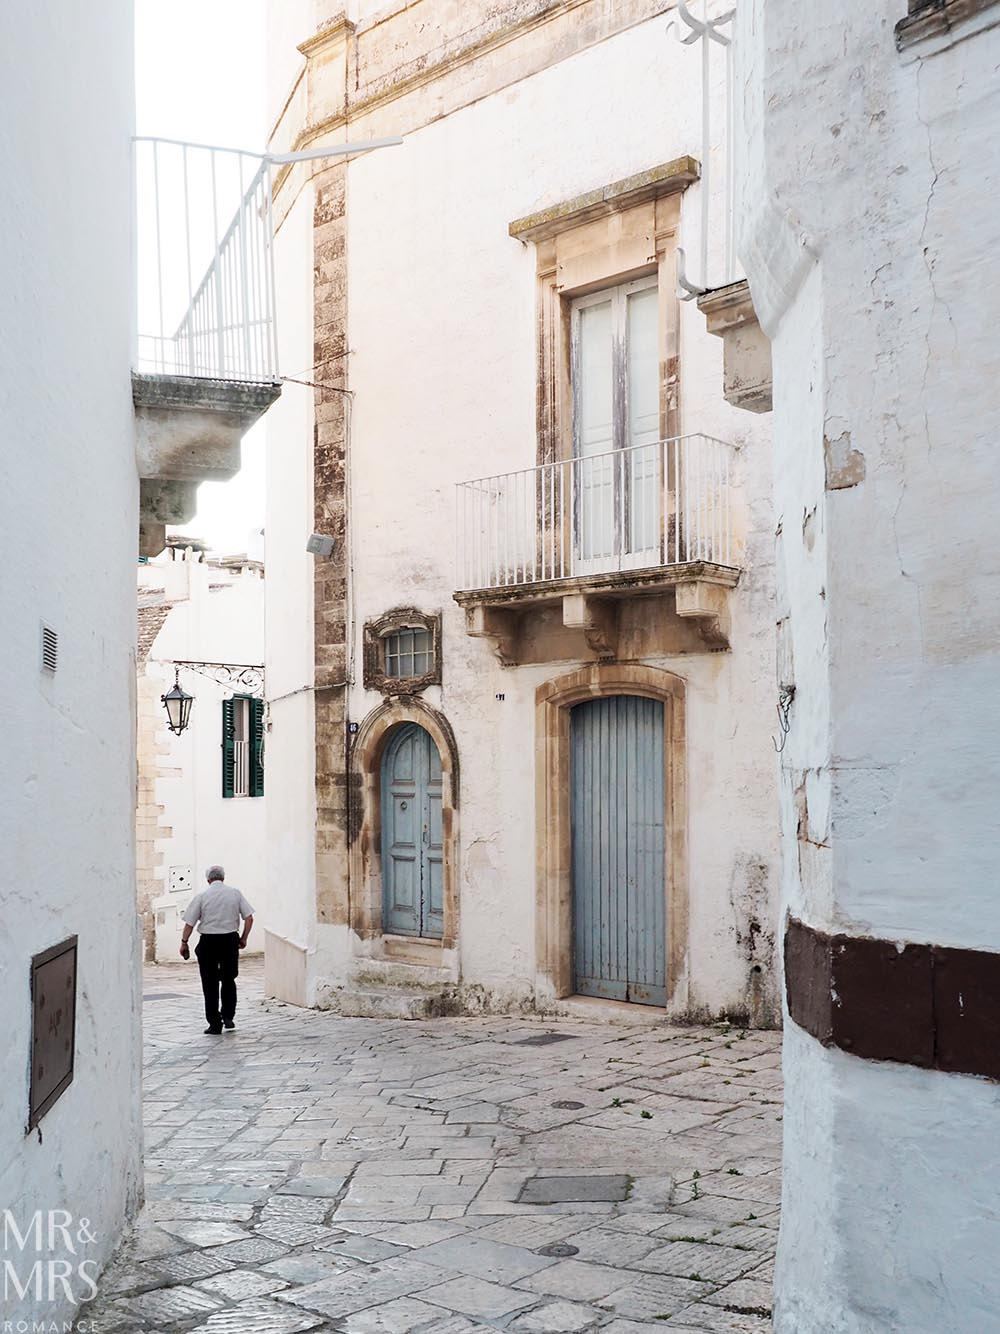 Martina Franca - Where to take the best photos in Puglia Italy - MMR